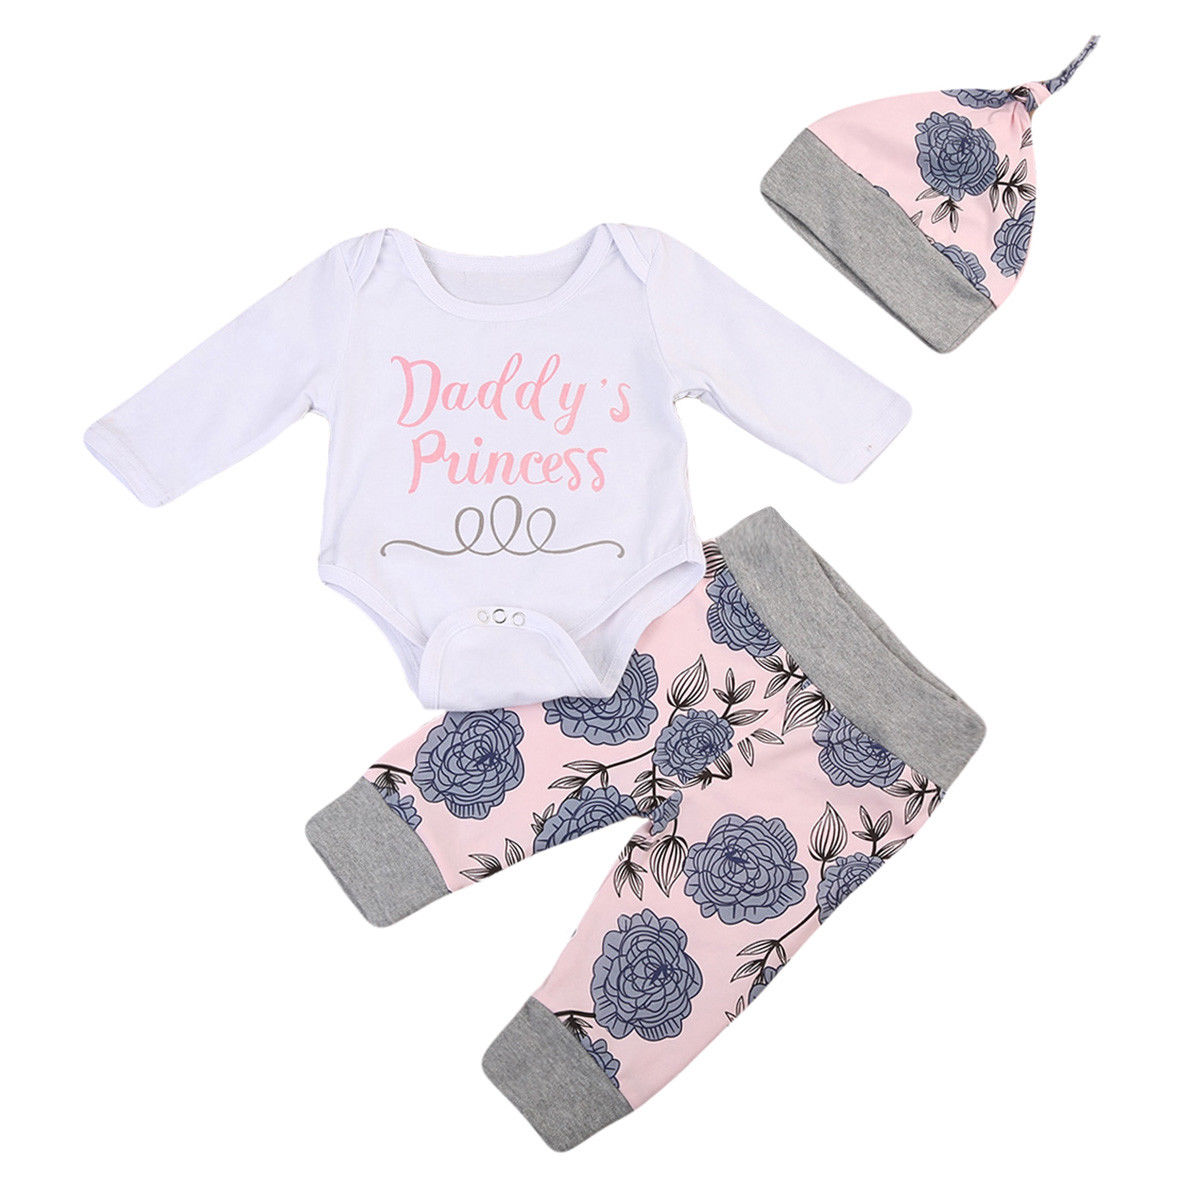 Le SSara Baby Girl Black Princess Romper Baby Bodysuit Costume Outfit 6-12 Months